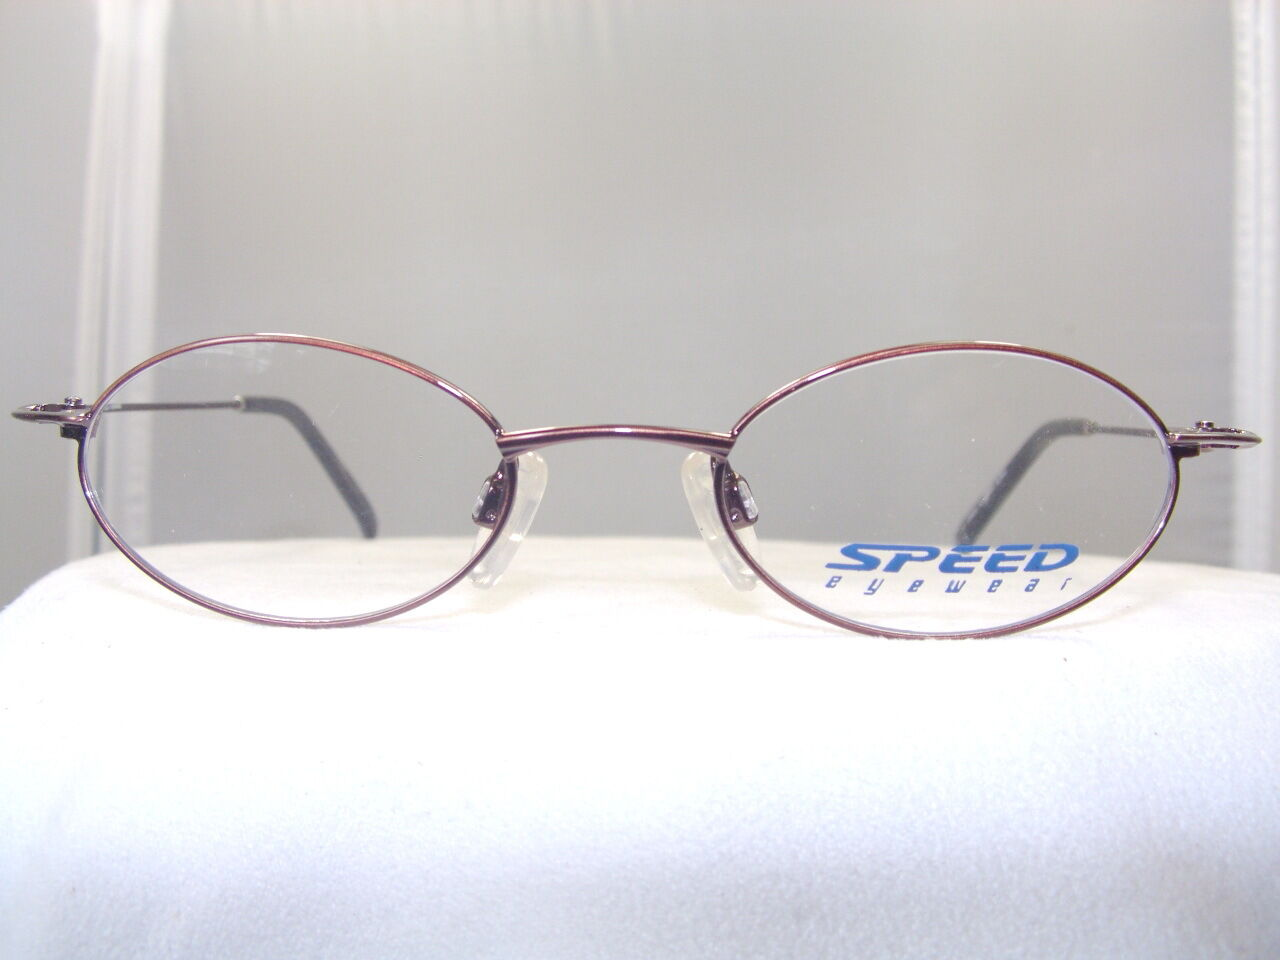 Eyeglass Frames Oval : SLEEK BRONZE OVAL RX READY EYEGLASS FRAME eBay